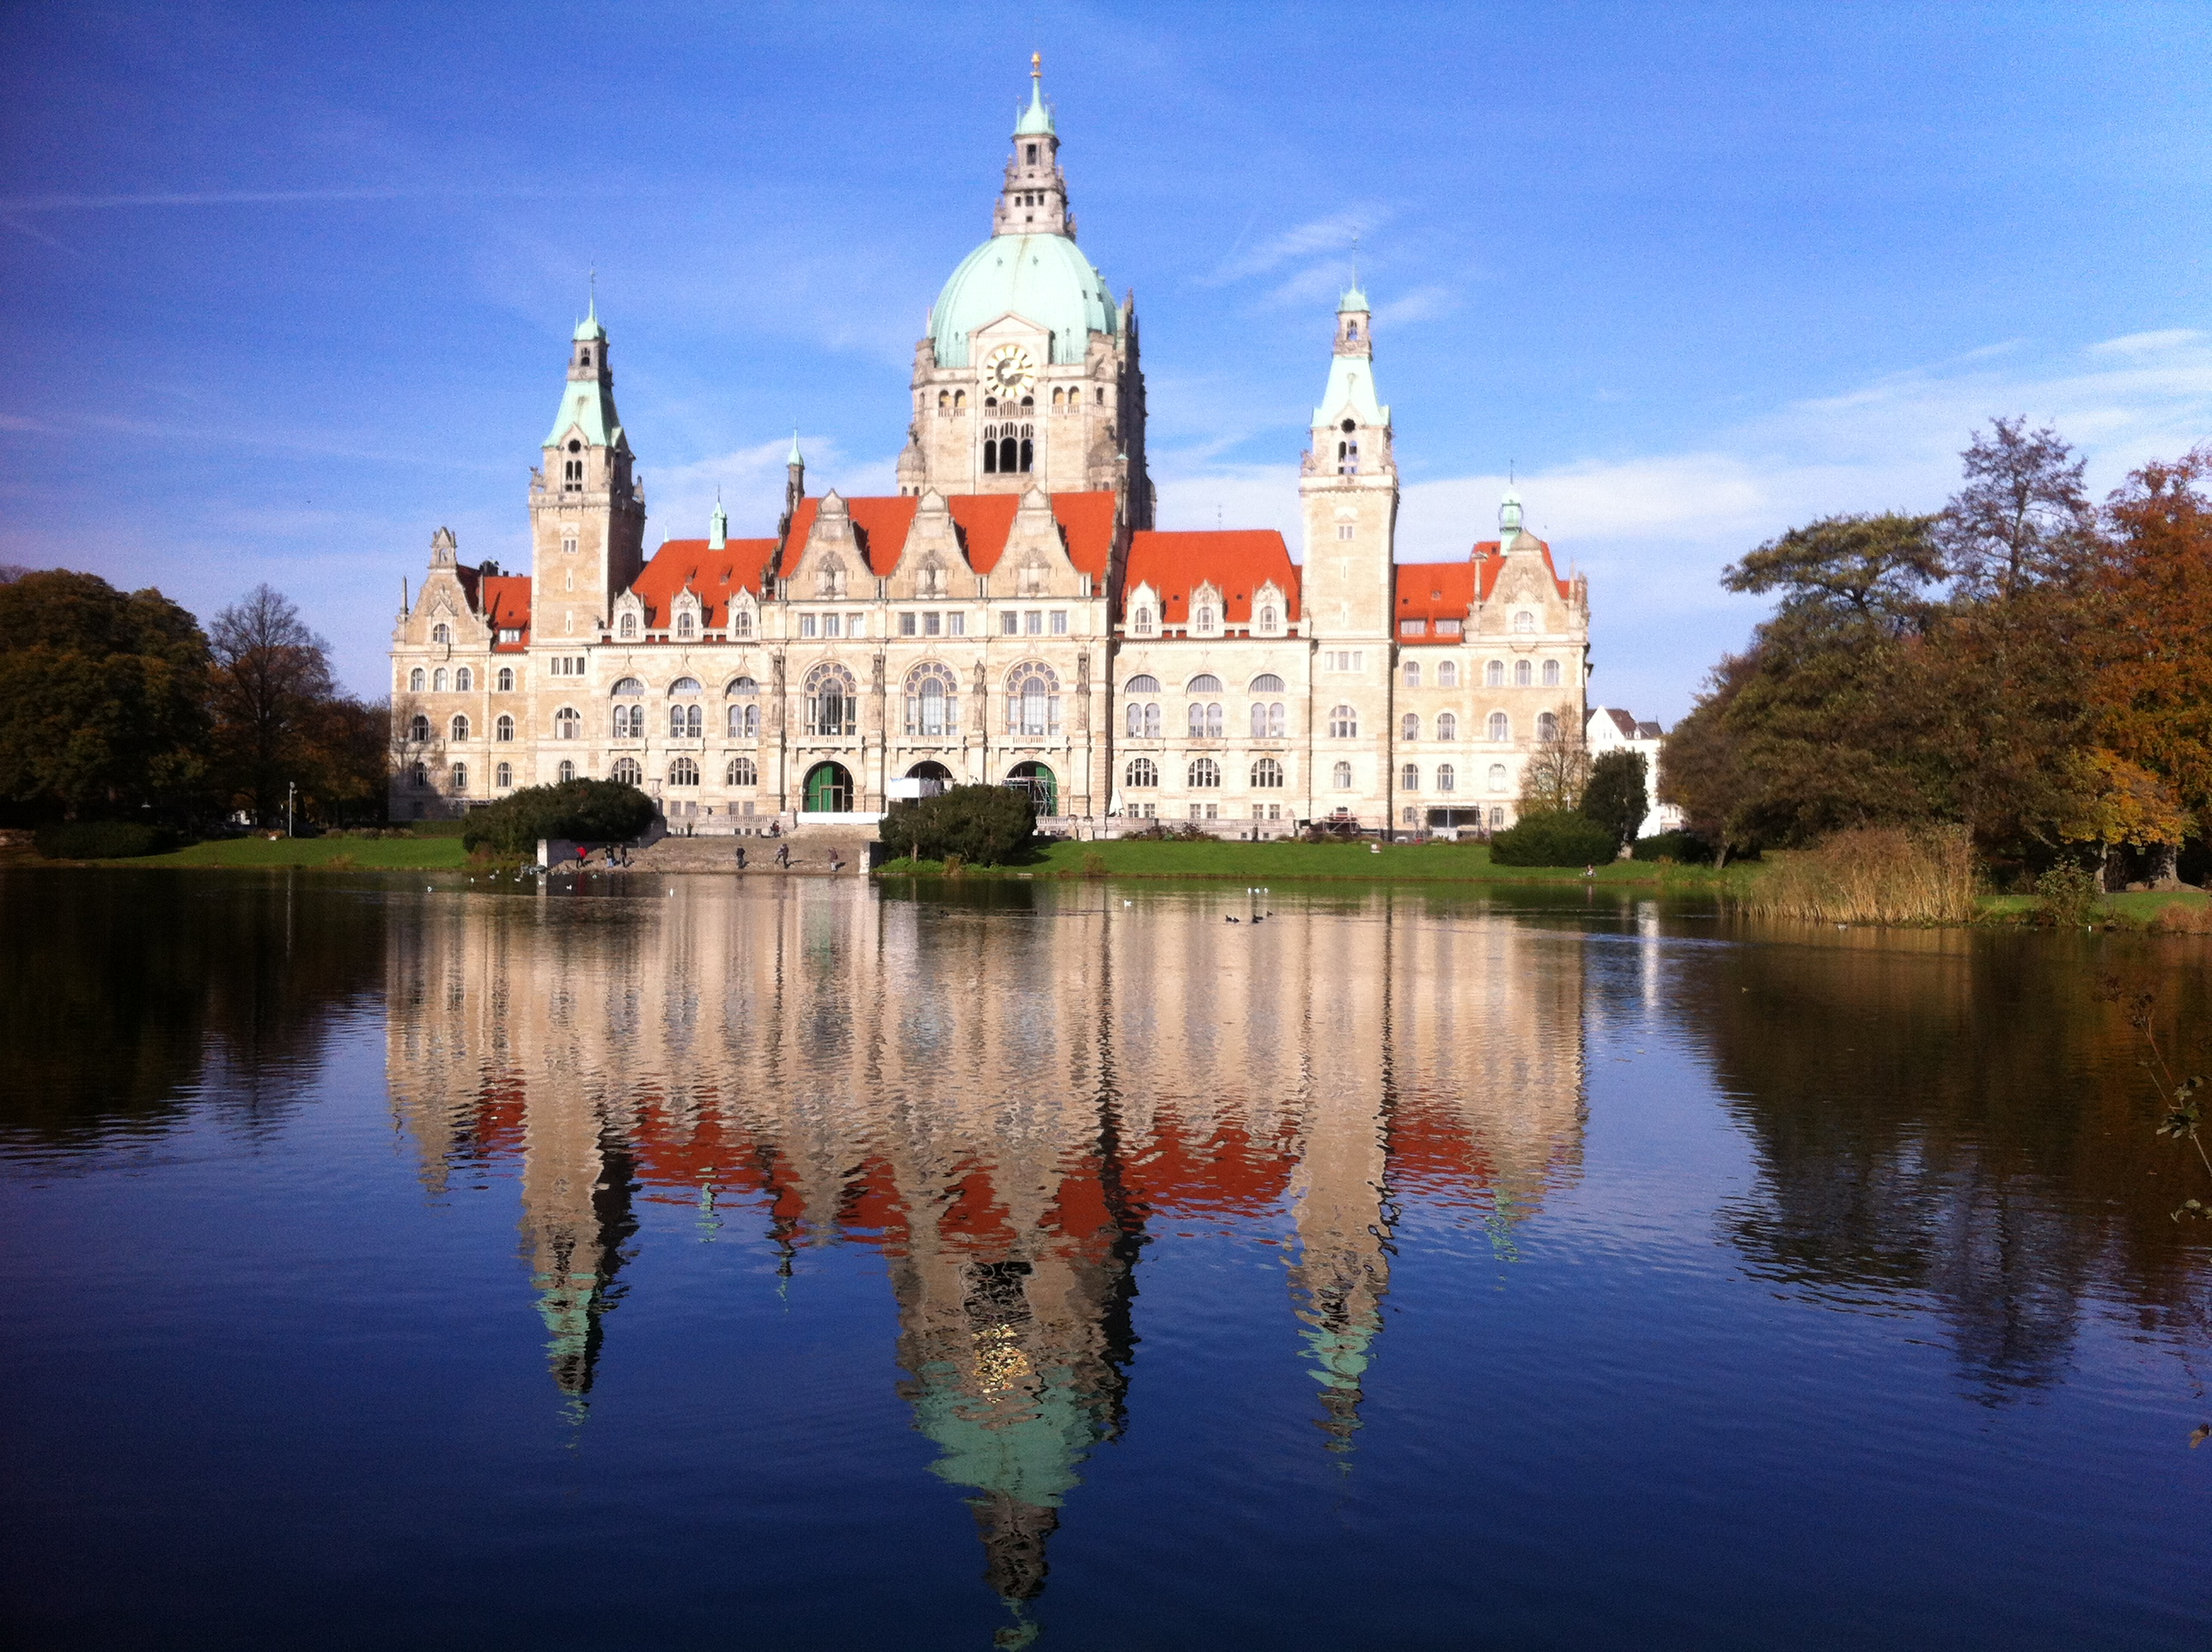 Parks In Hannover Elizabeth Kovar 10 Reasons Why Hannover Is An Amazing